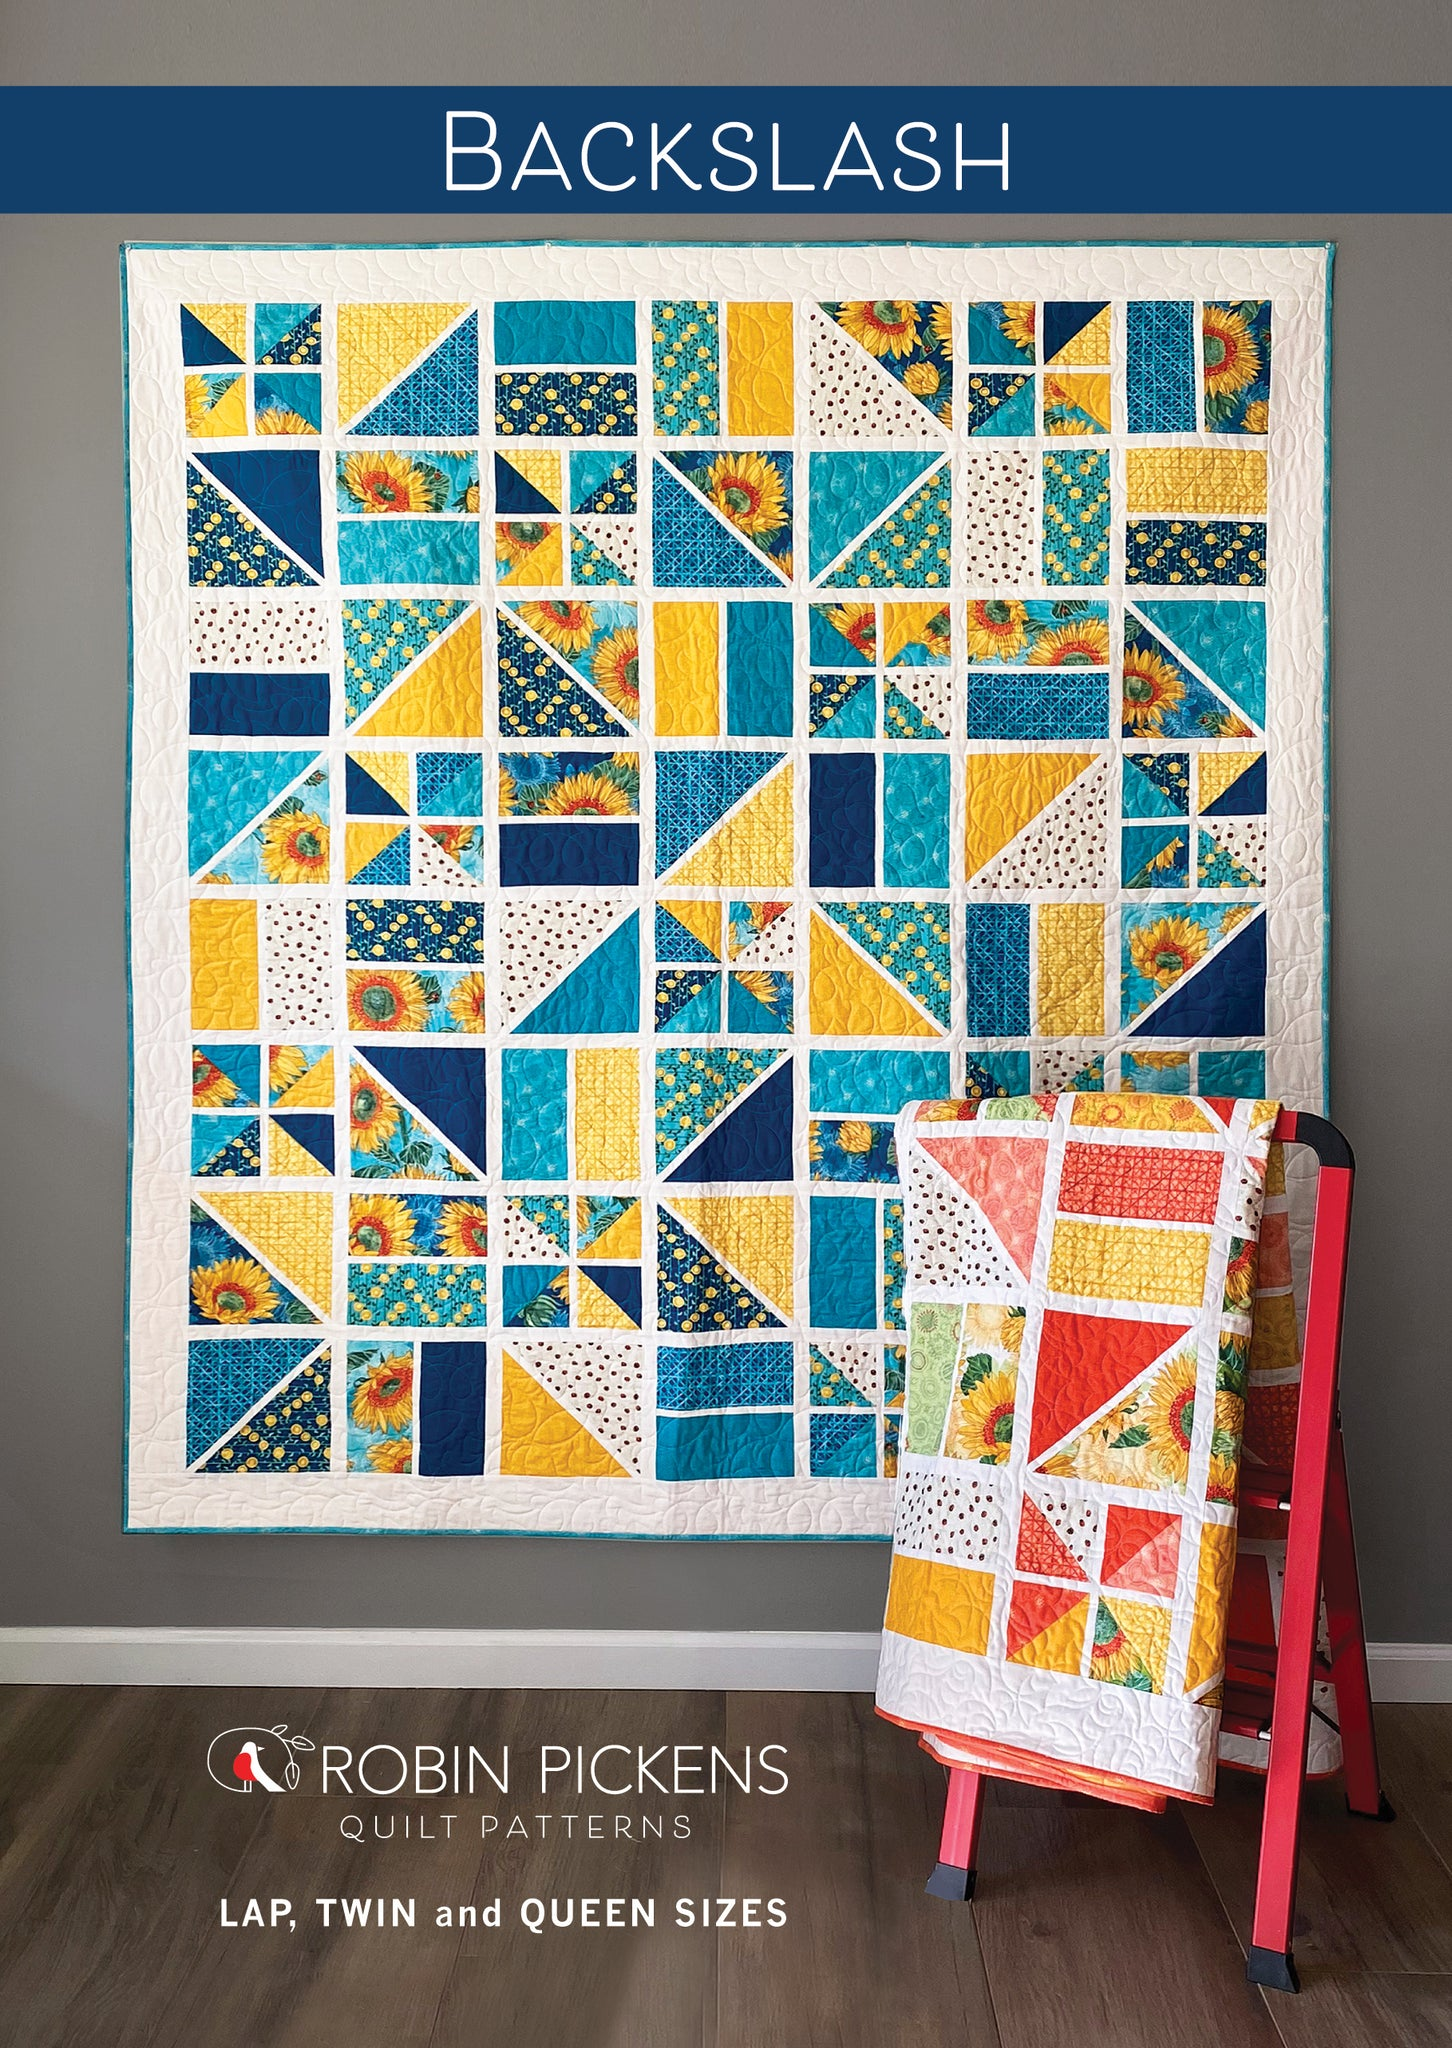 BACKSLASH Quilt Pattern PRINTED booklet by Robin Pickens. Geometric Lap, Twin, or Queen